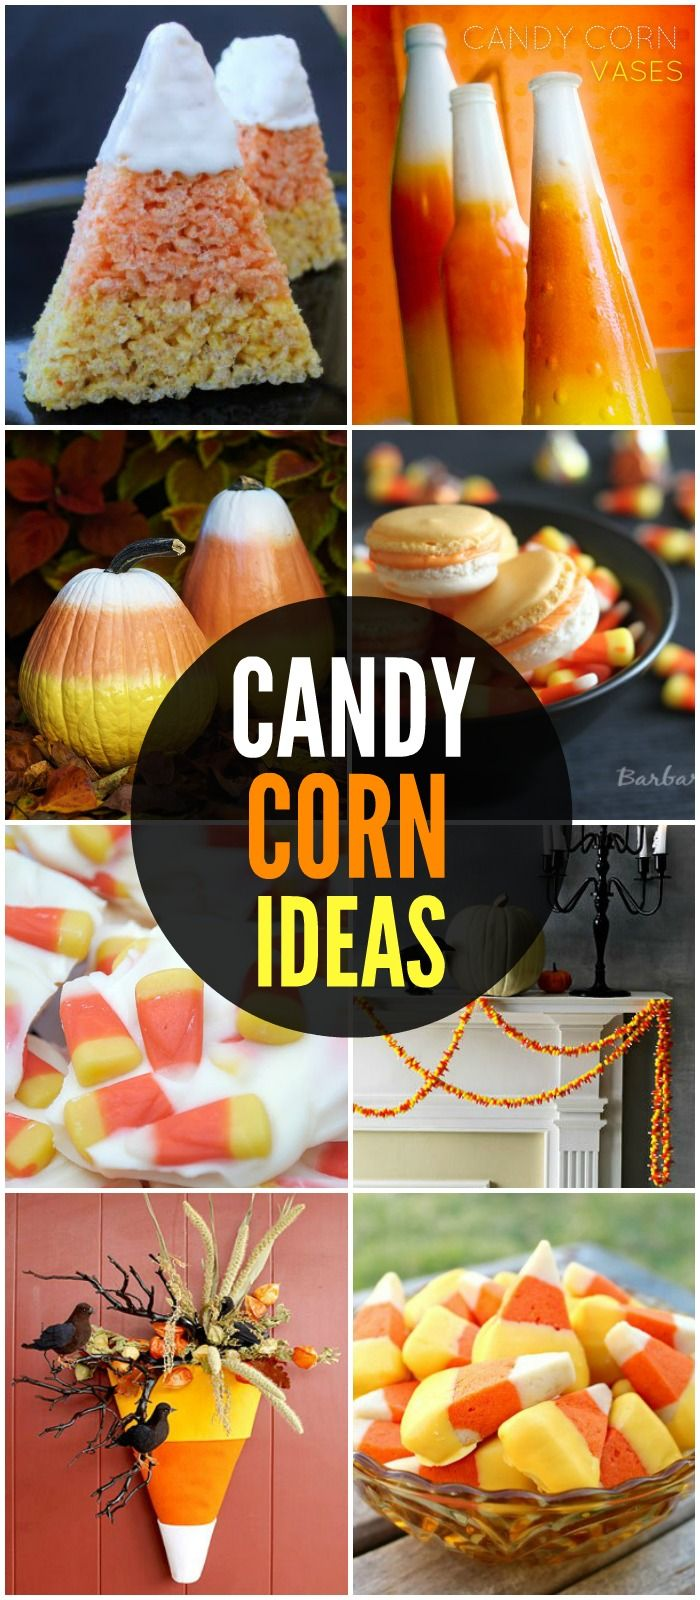 Candy corn ideas including crafts and treats - a must see collection!! { lilluna.com }